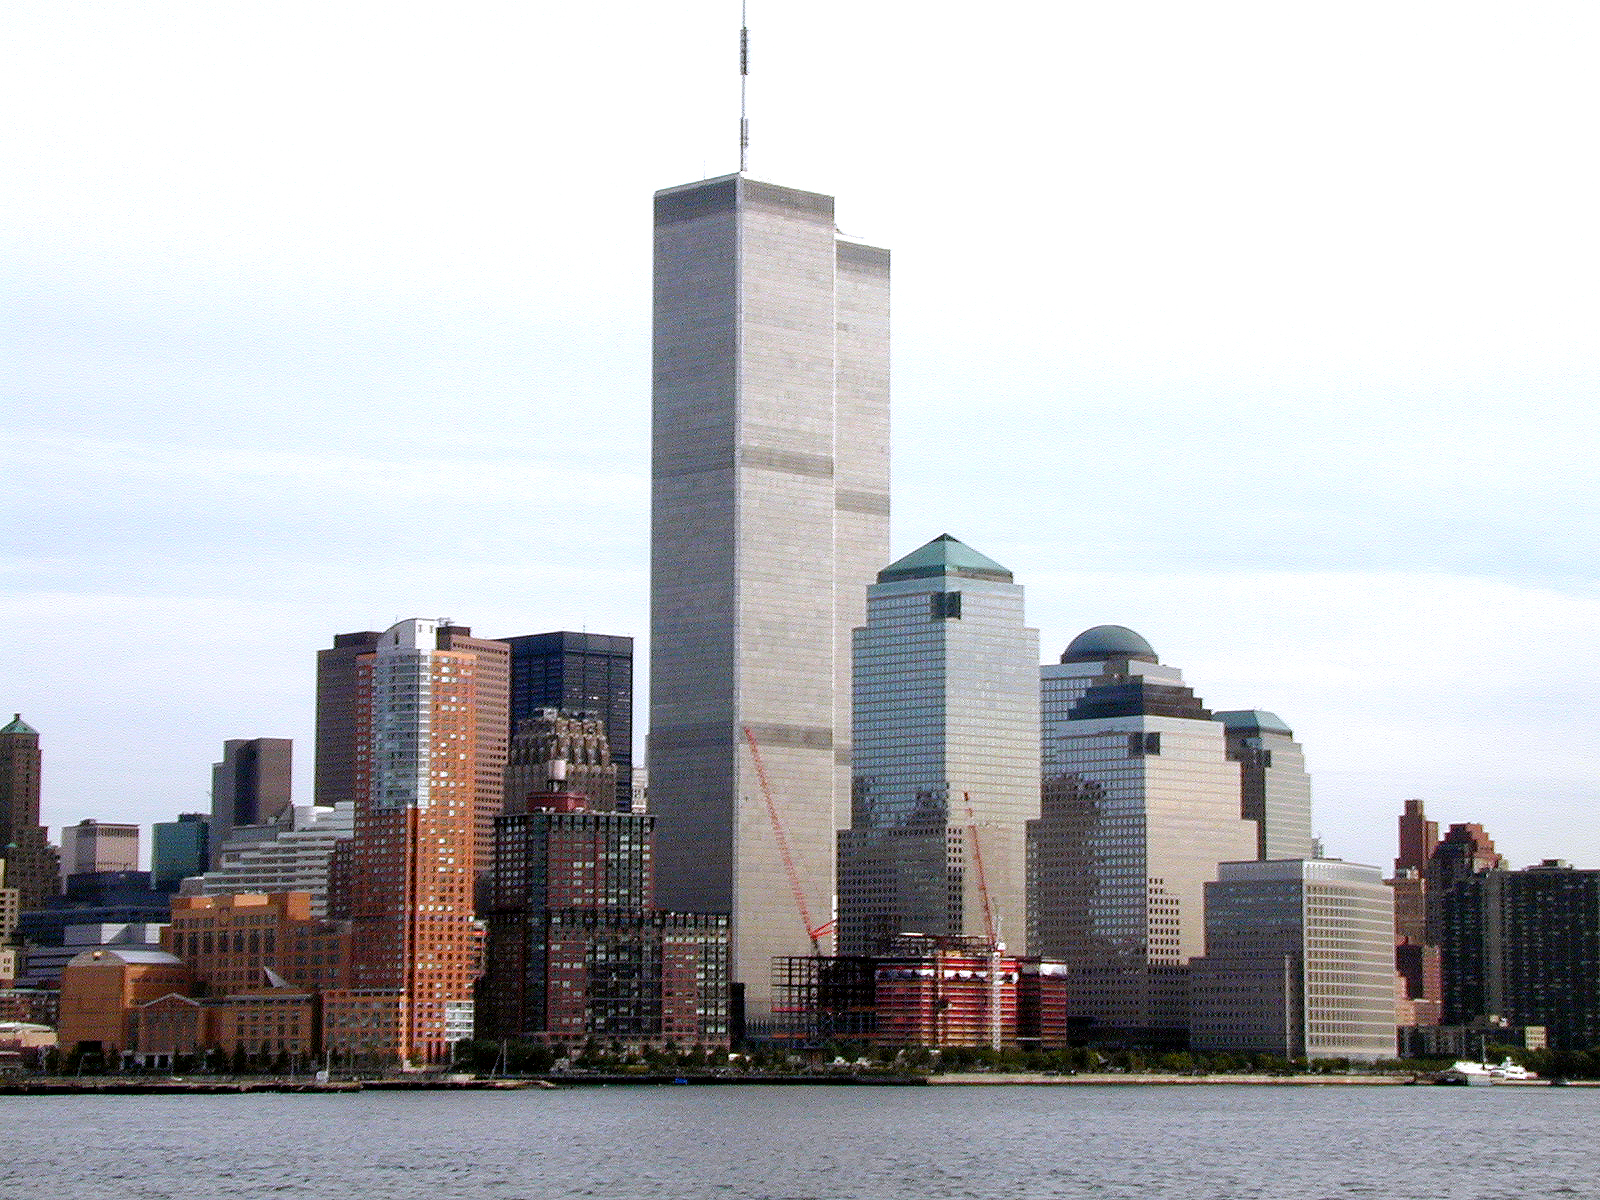 Pictures from the world trade center 9/11: World Trade Center Pictures - 9/11 Attacks - m